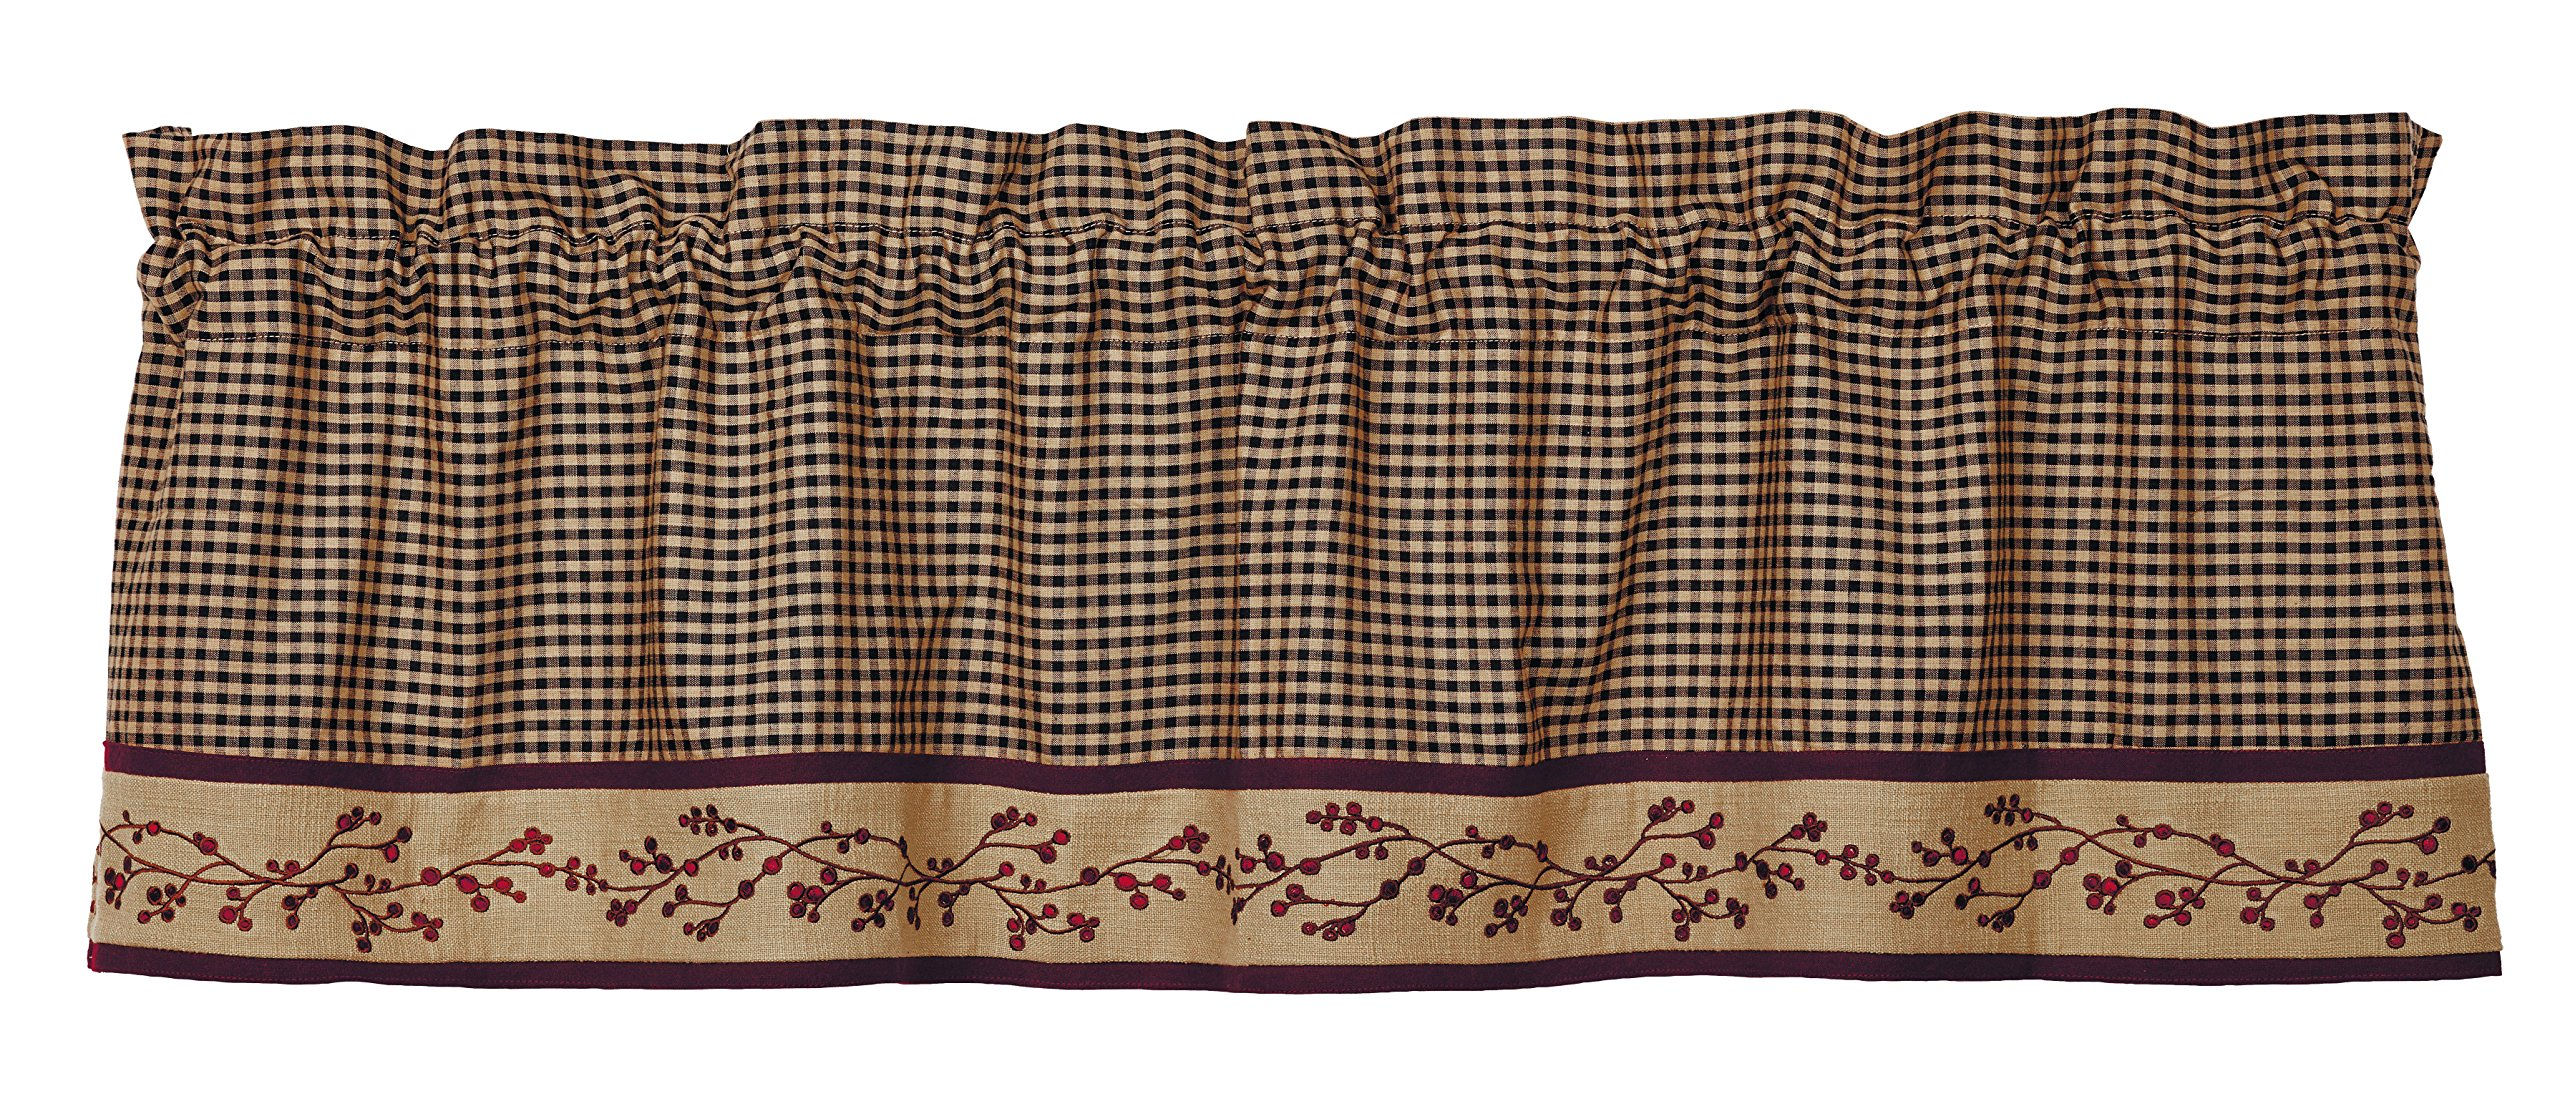 Piper Classics Berry Vine Valance, 60''x16'', Country Primitive Curtain, Black Check with Embroidered Berry Vine